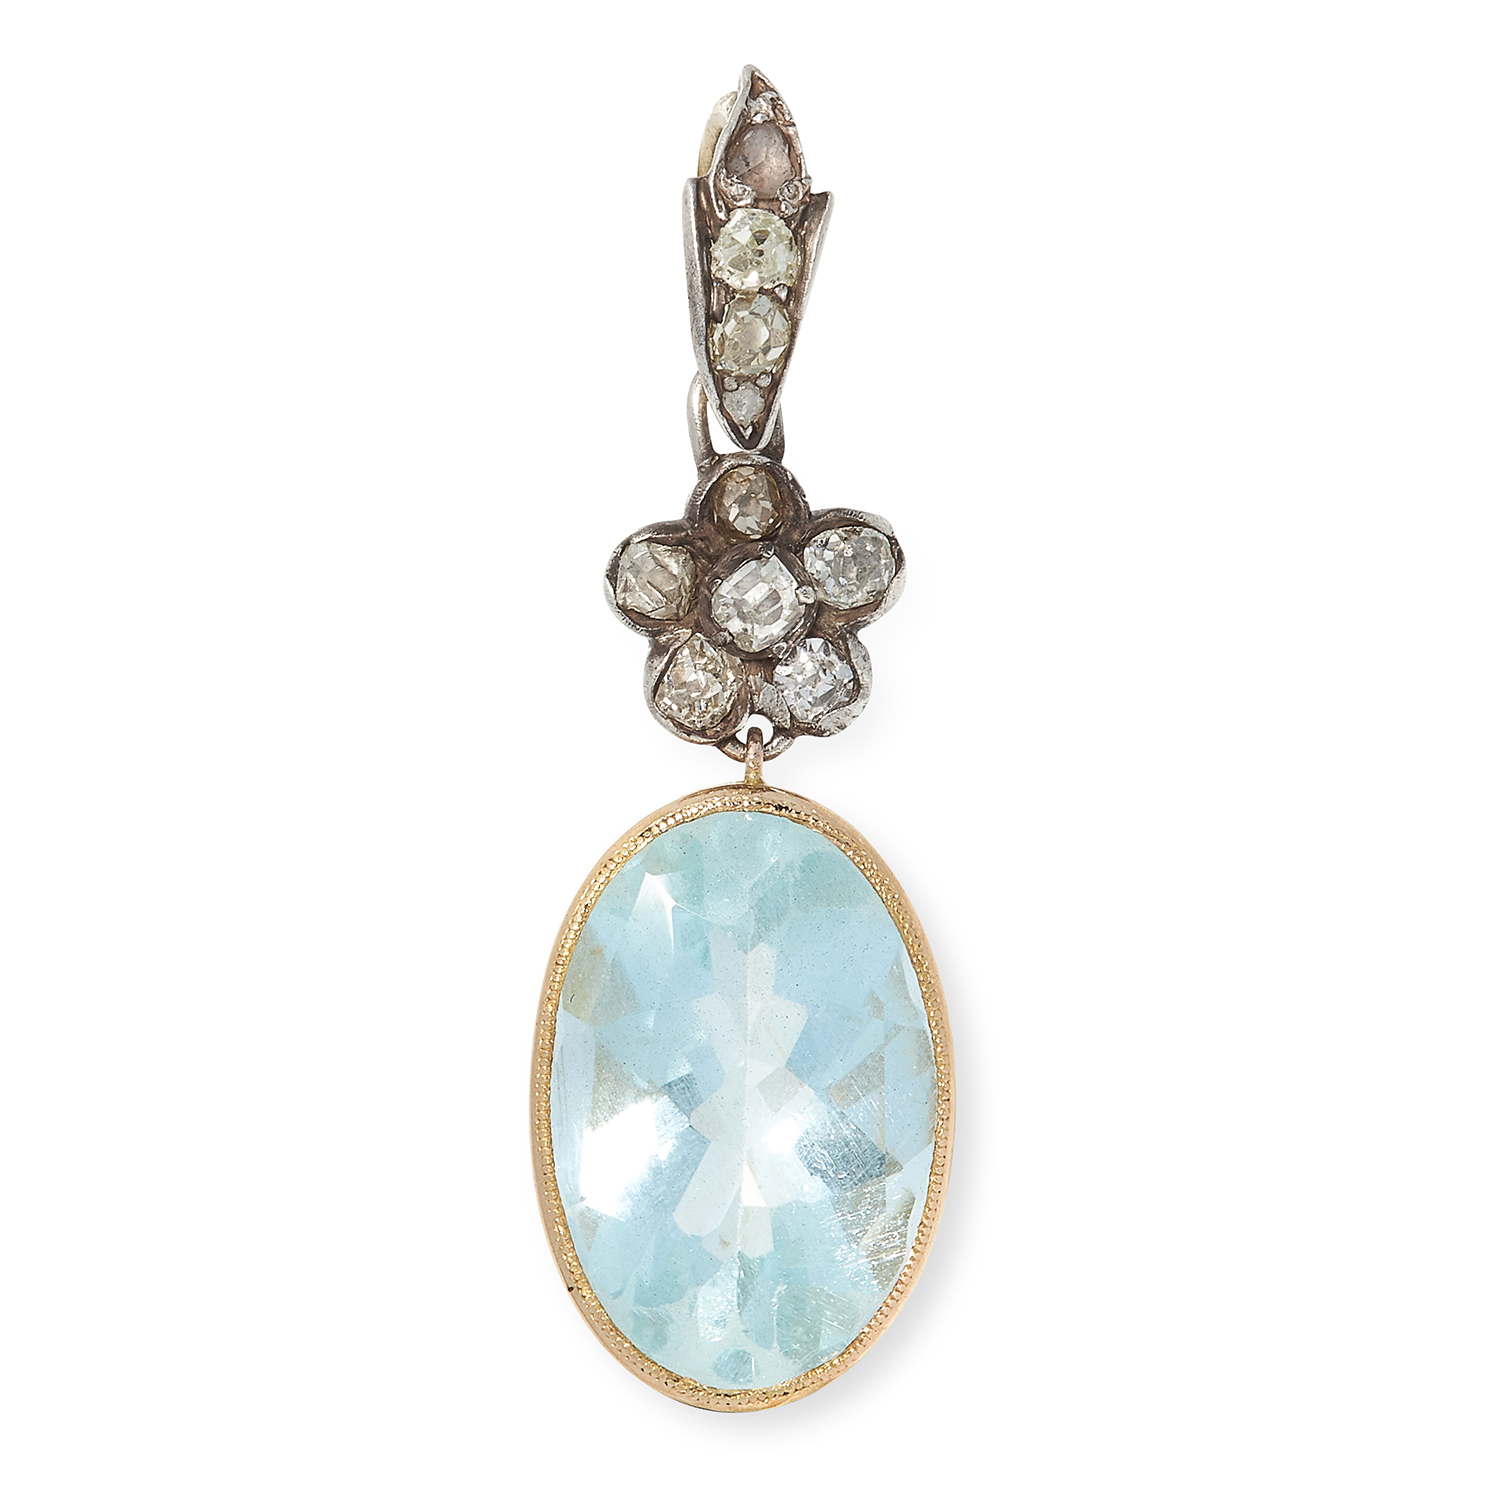 AQUAMARINE AND DIAMOND PENDANT set with an oval cut aquamarine of approximately 6.99 carats below